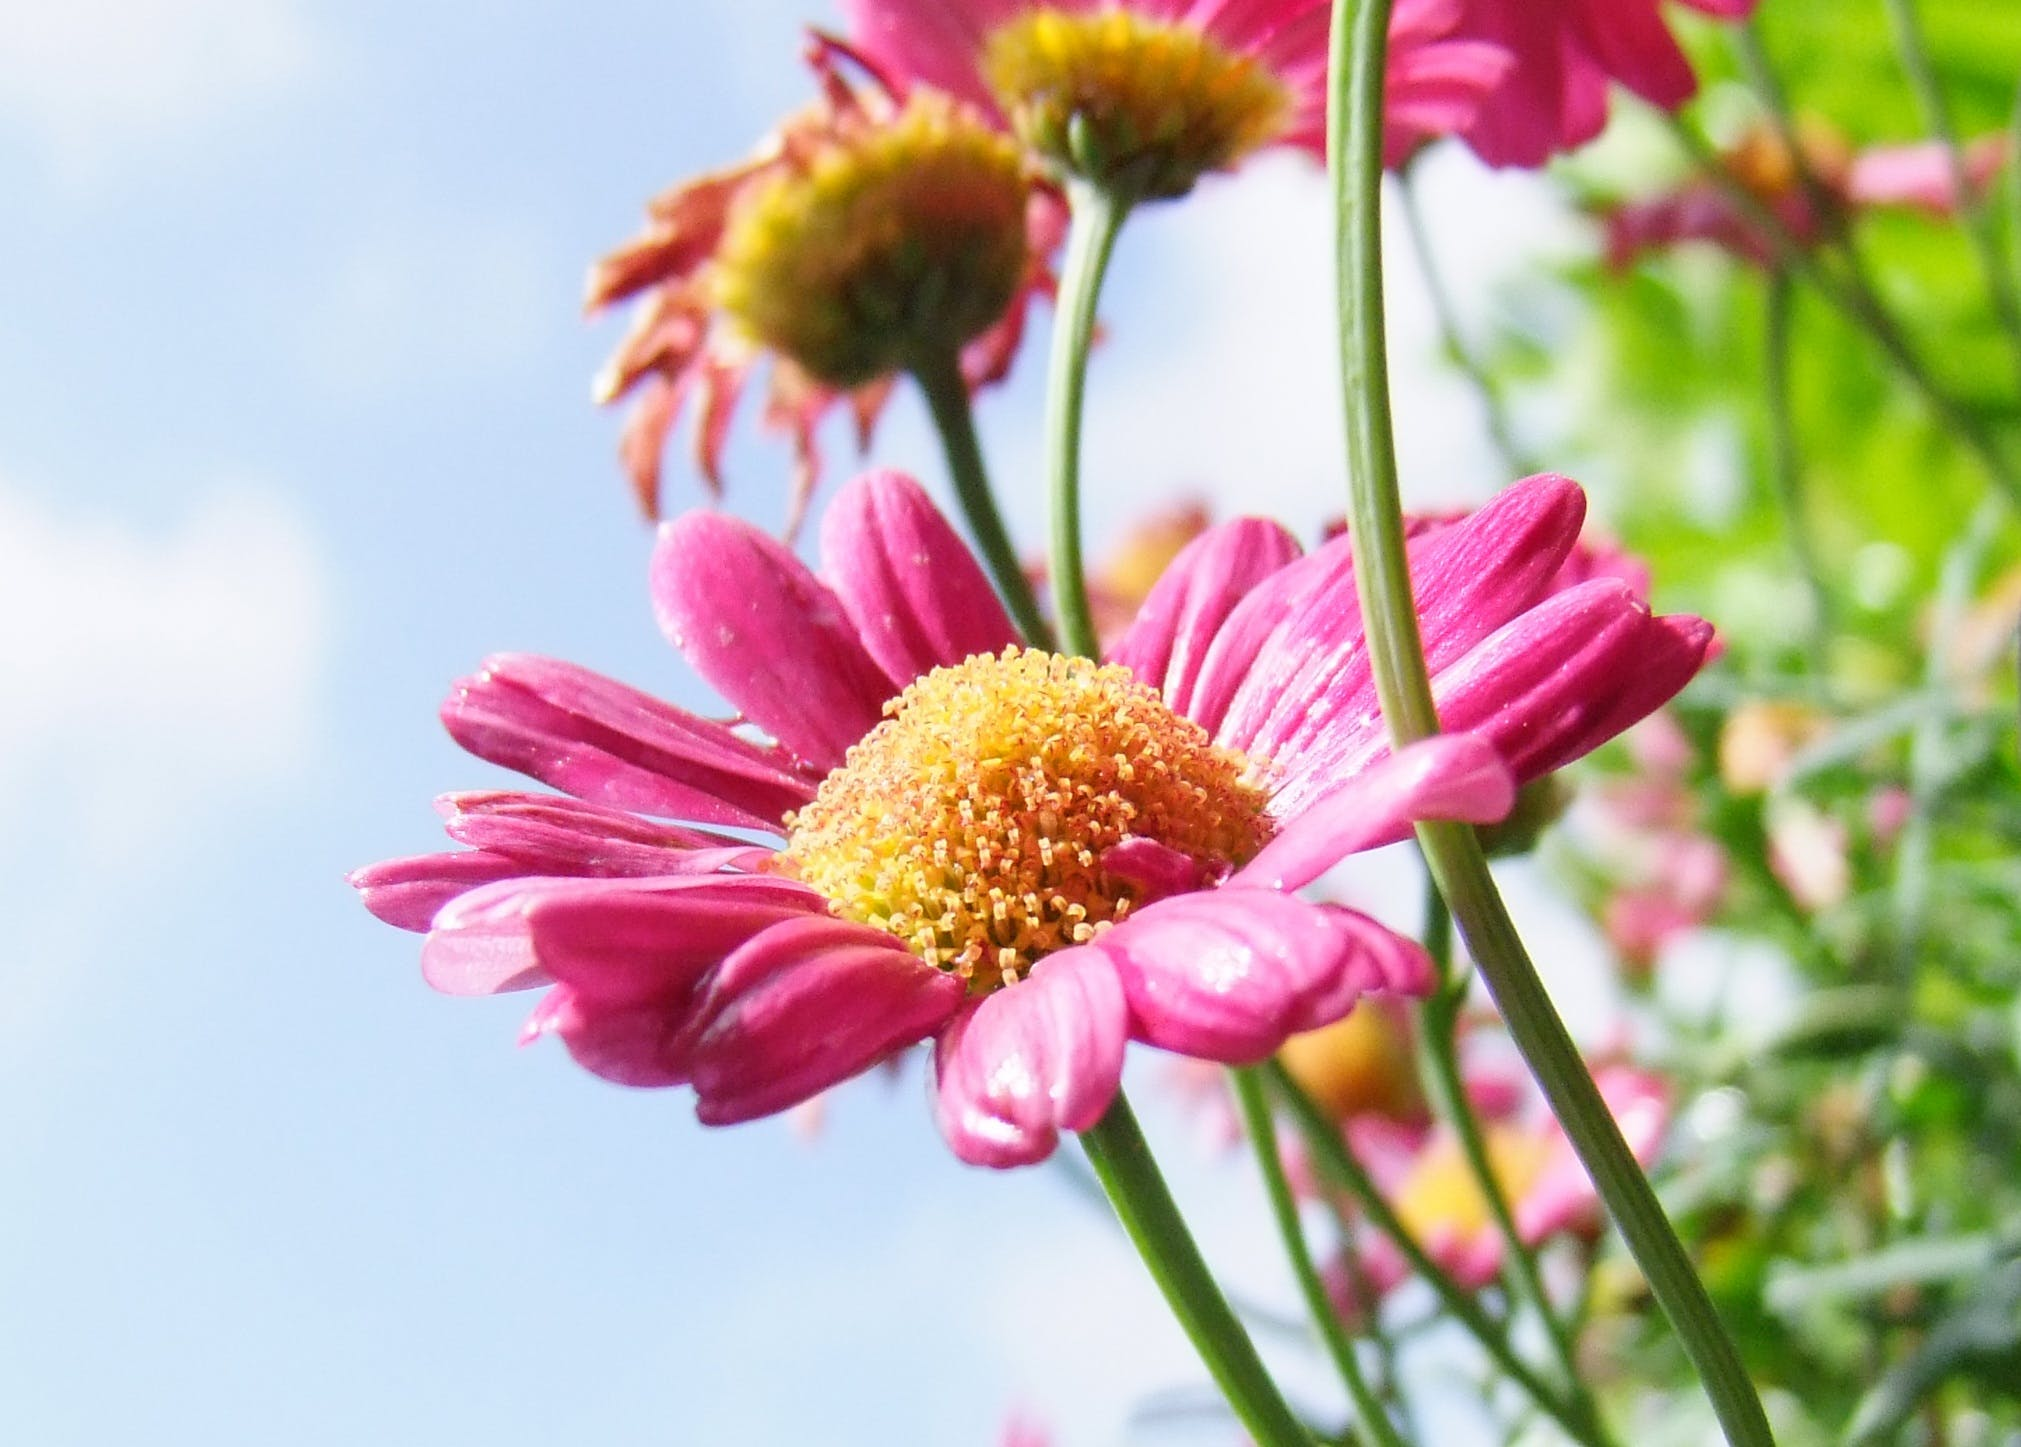 Pink Long and Layered Petaled Flower during Daytime